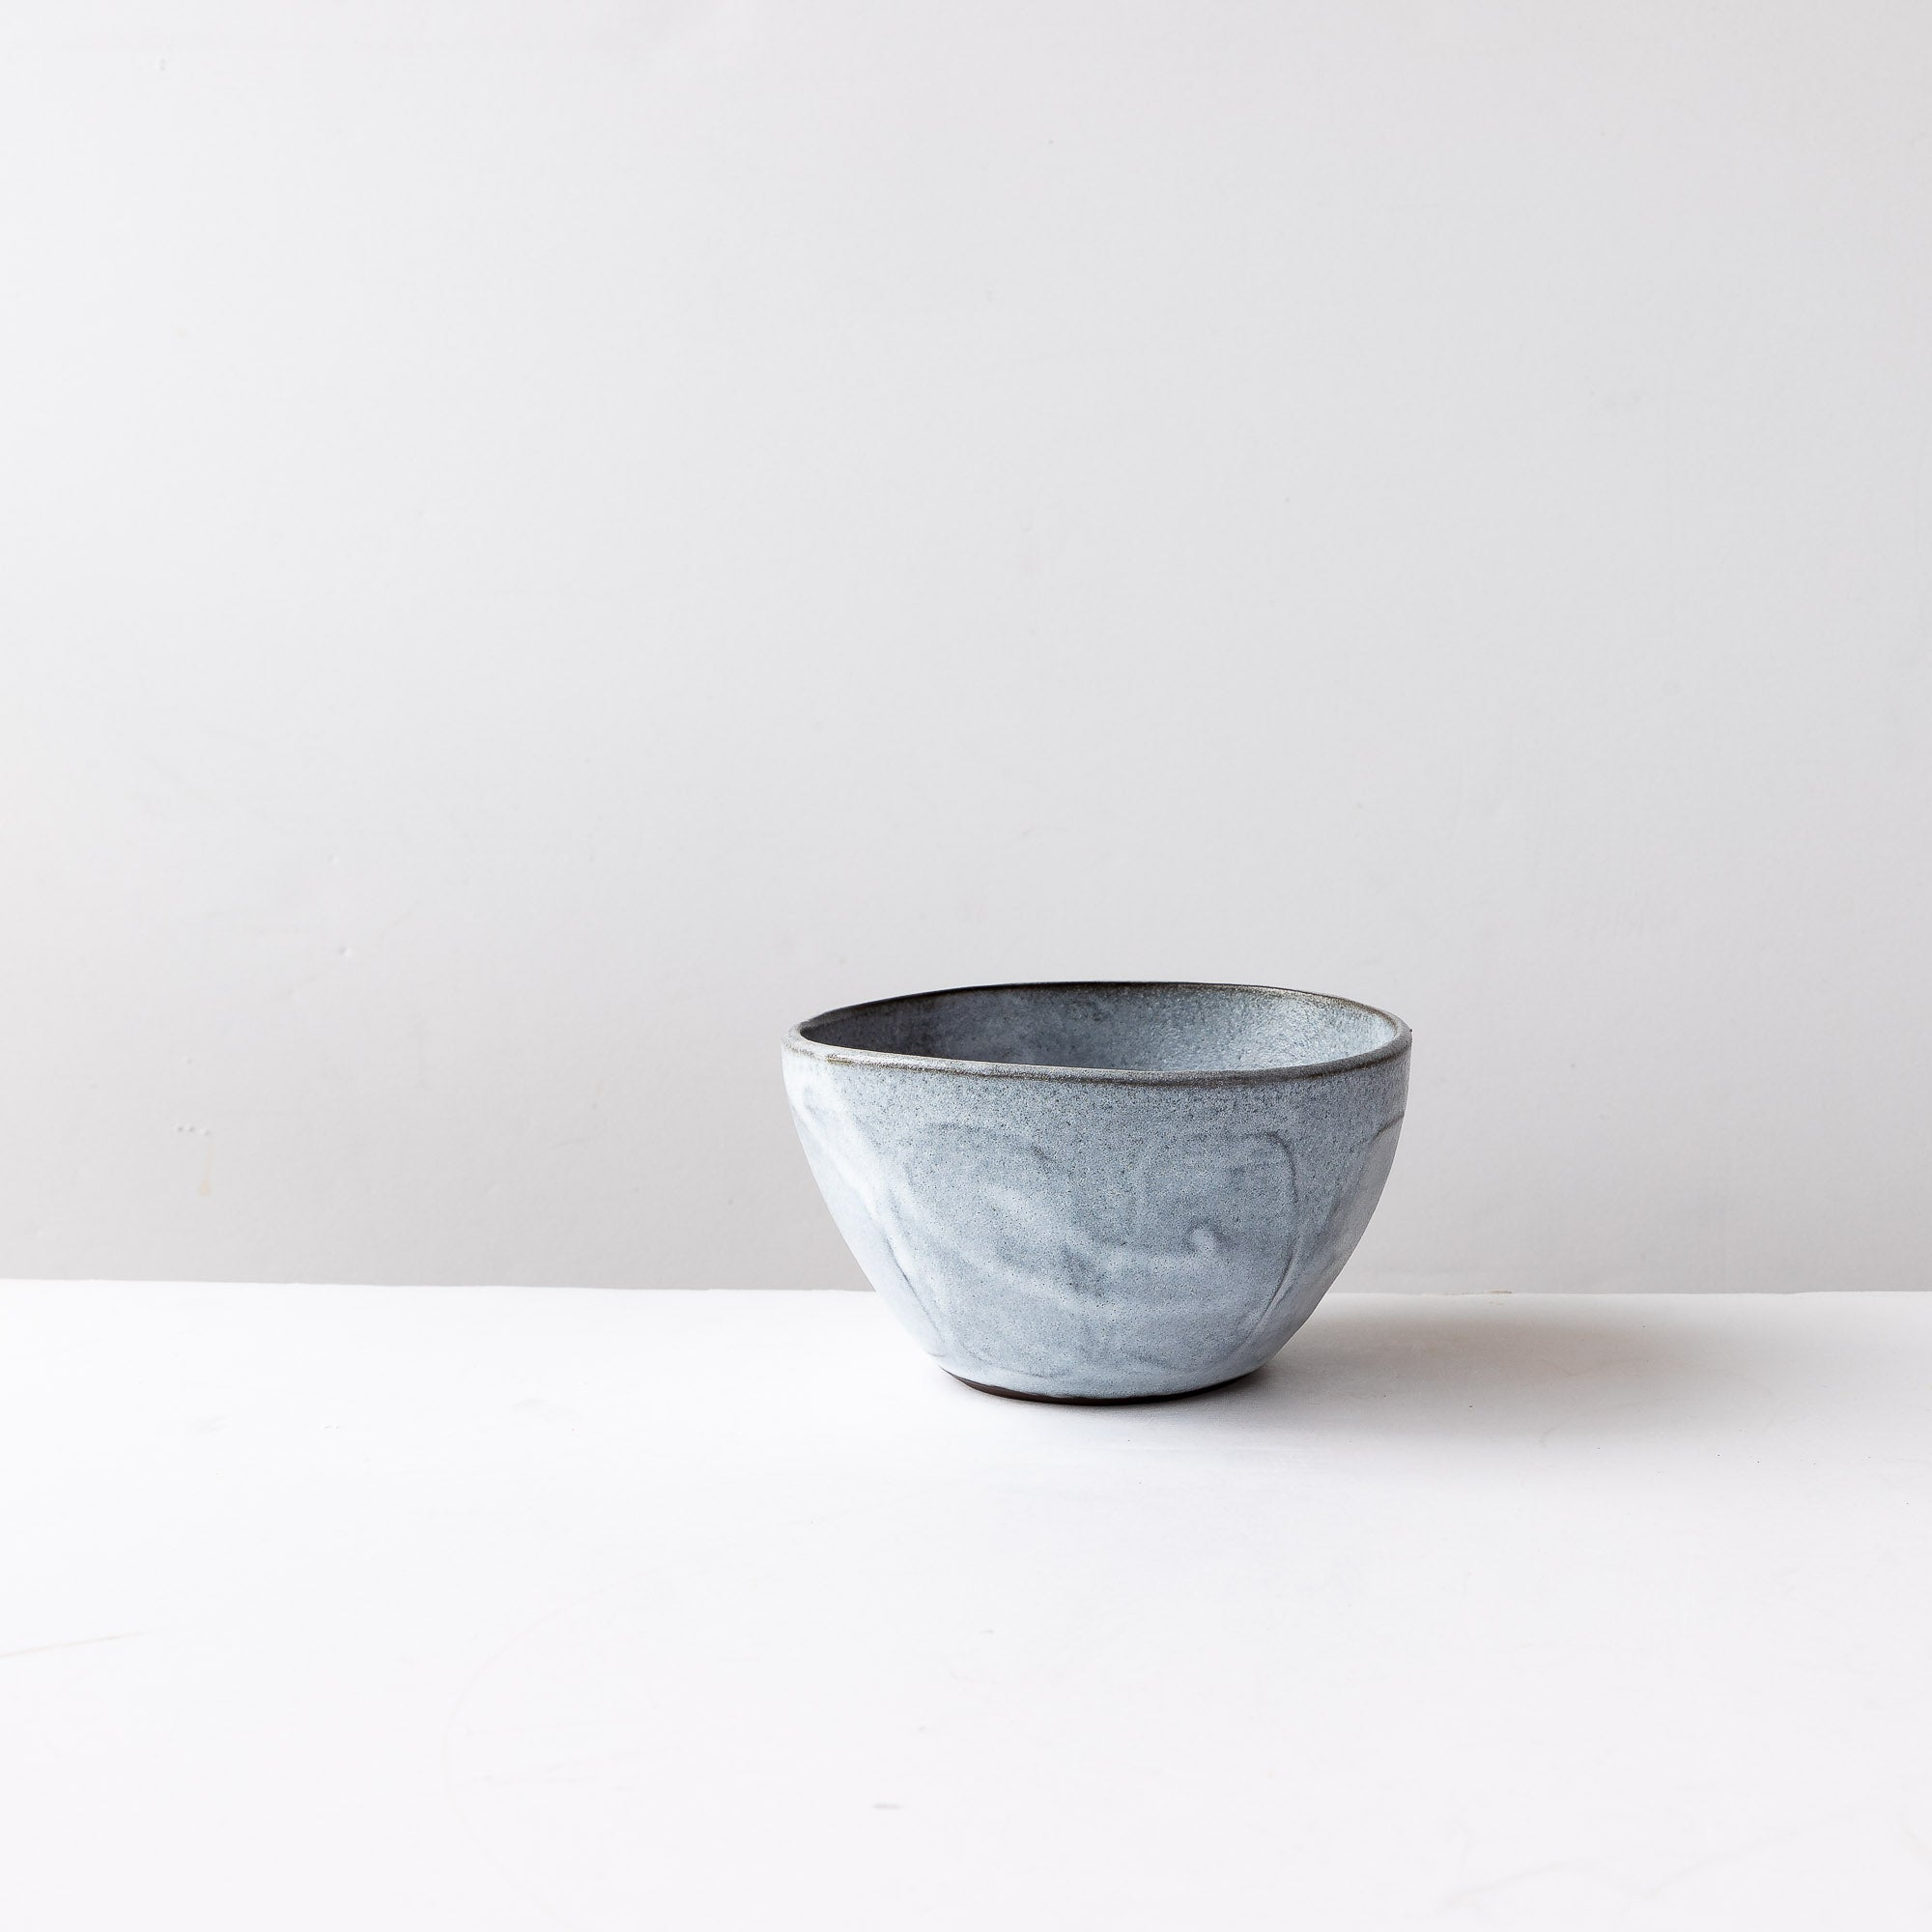 Handmade Stoneware Breakfast Bowl - Grey & White - Sold by Chic & Basta